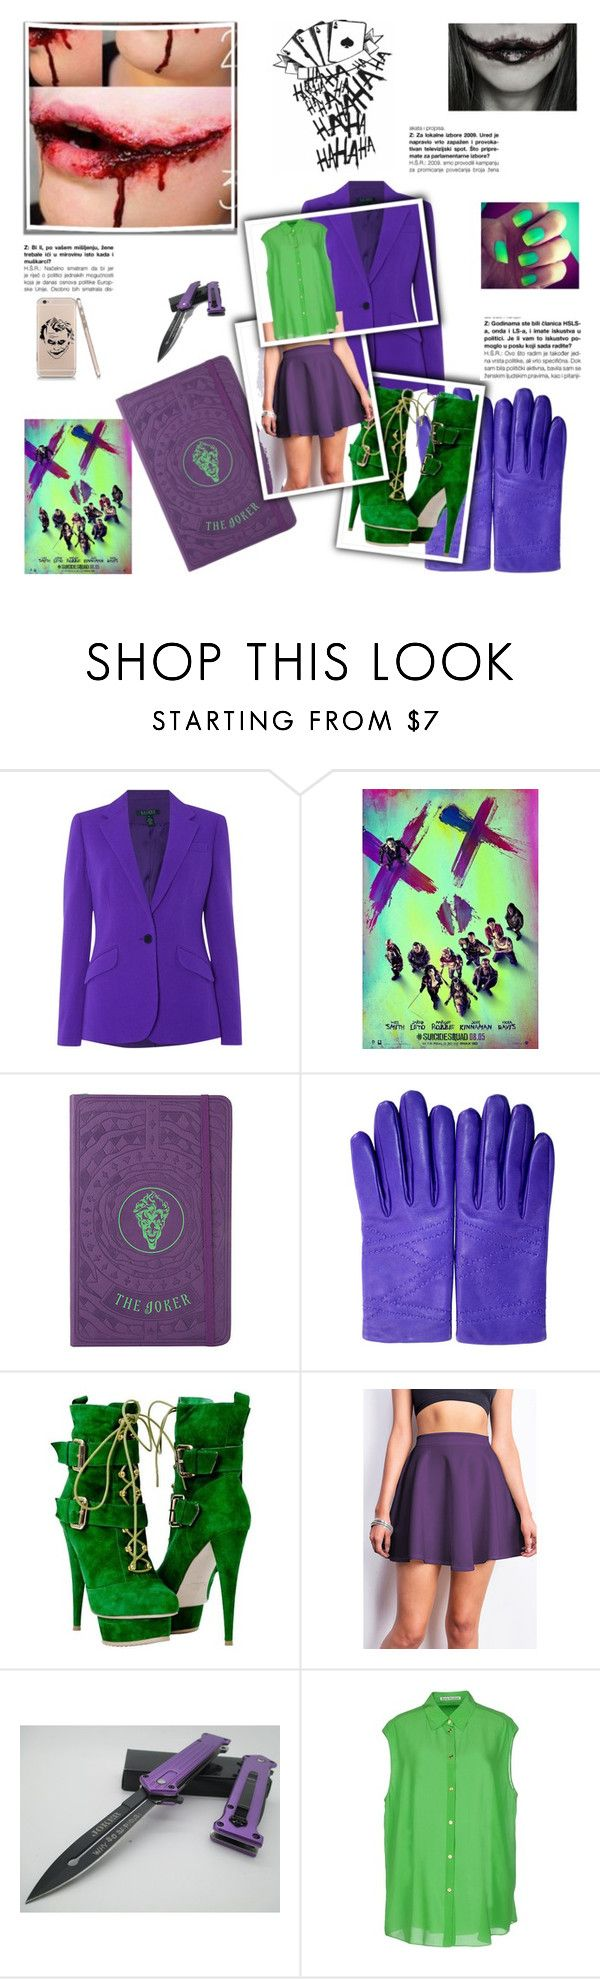 """""""Holly Davis - Costume Party (Female Joker)"""" by malluh-salvatore ❤ liked on Polyvore featuring Lauren Ralph Lauren, Hermès and Acne Studios"""